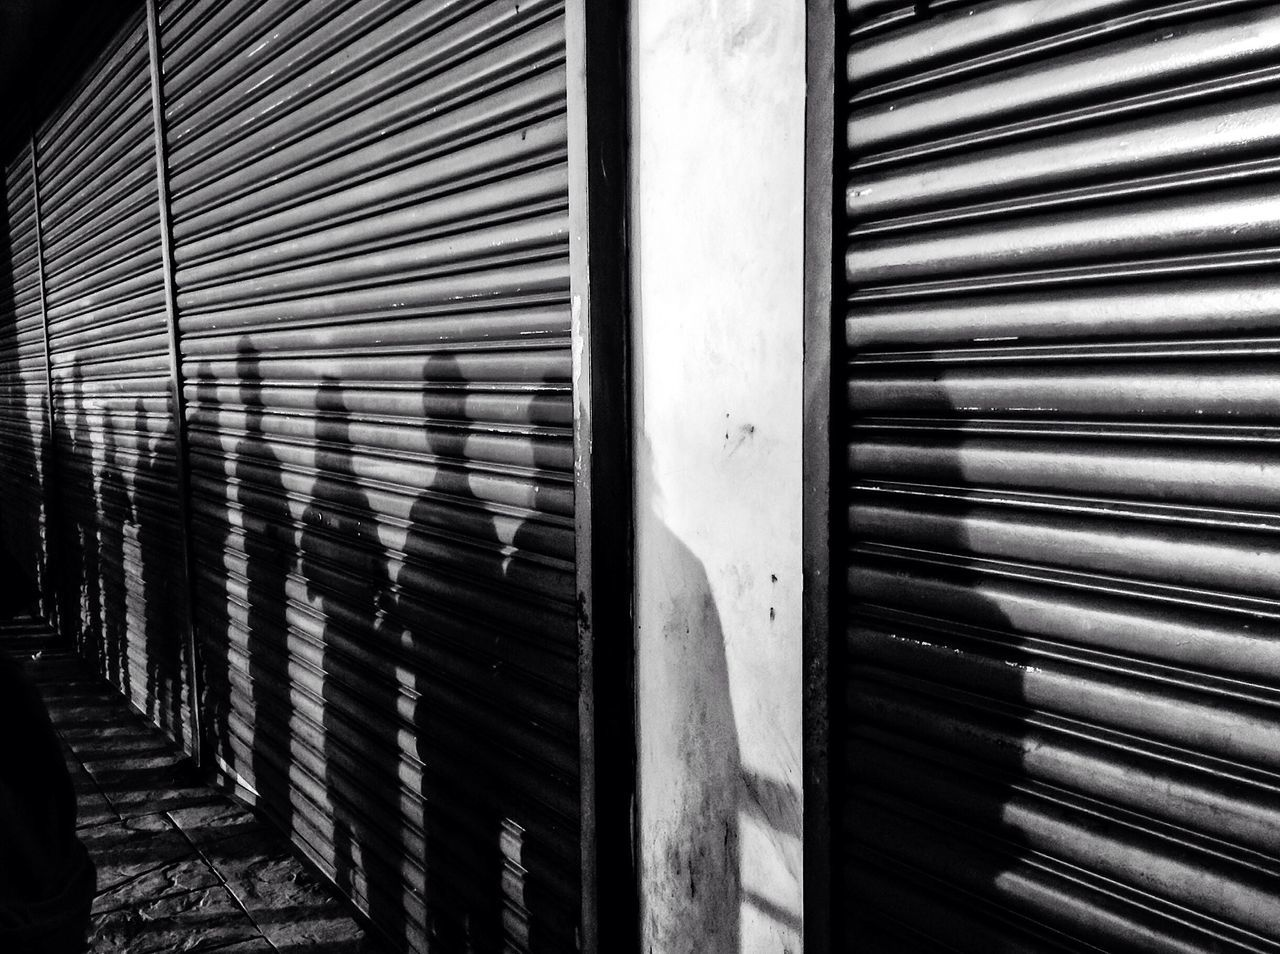 Shadow of people on shutter